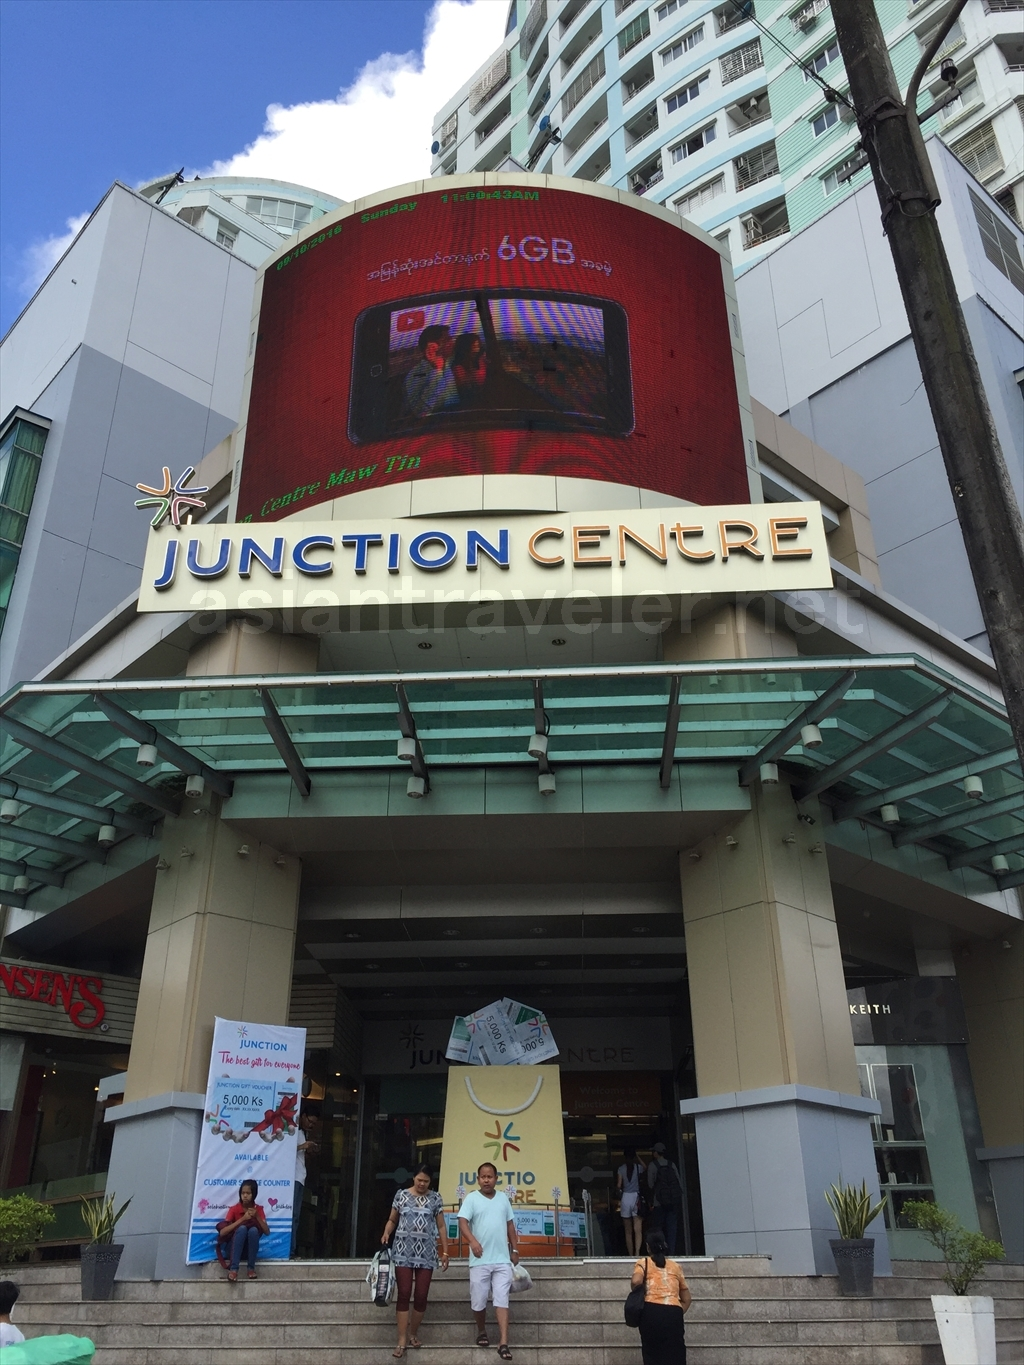 Yangon Junction Centre